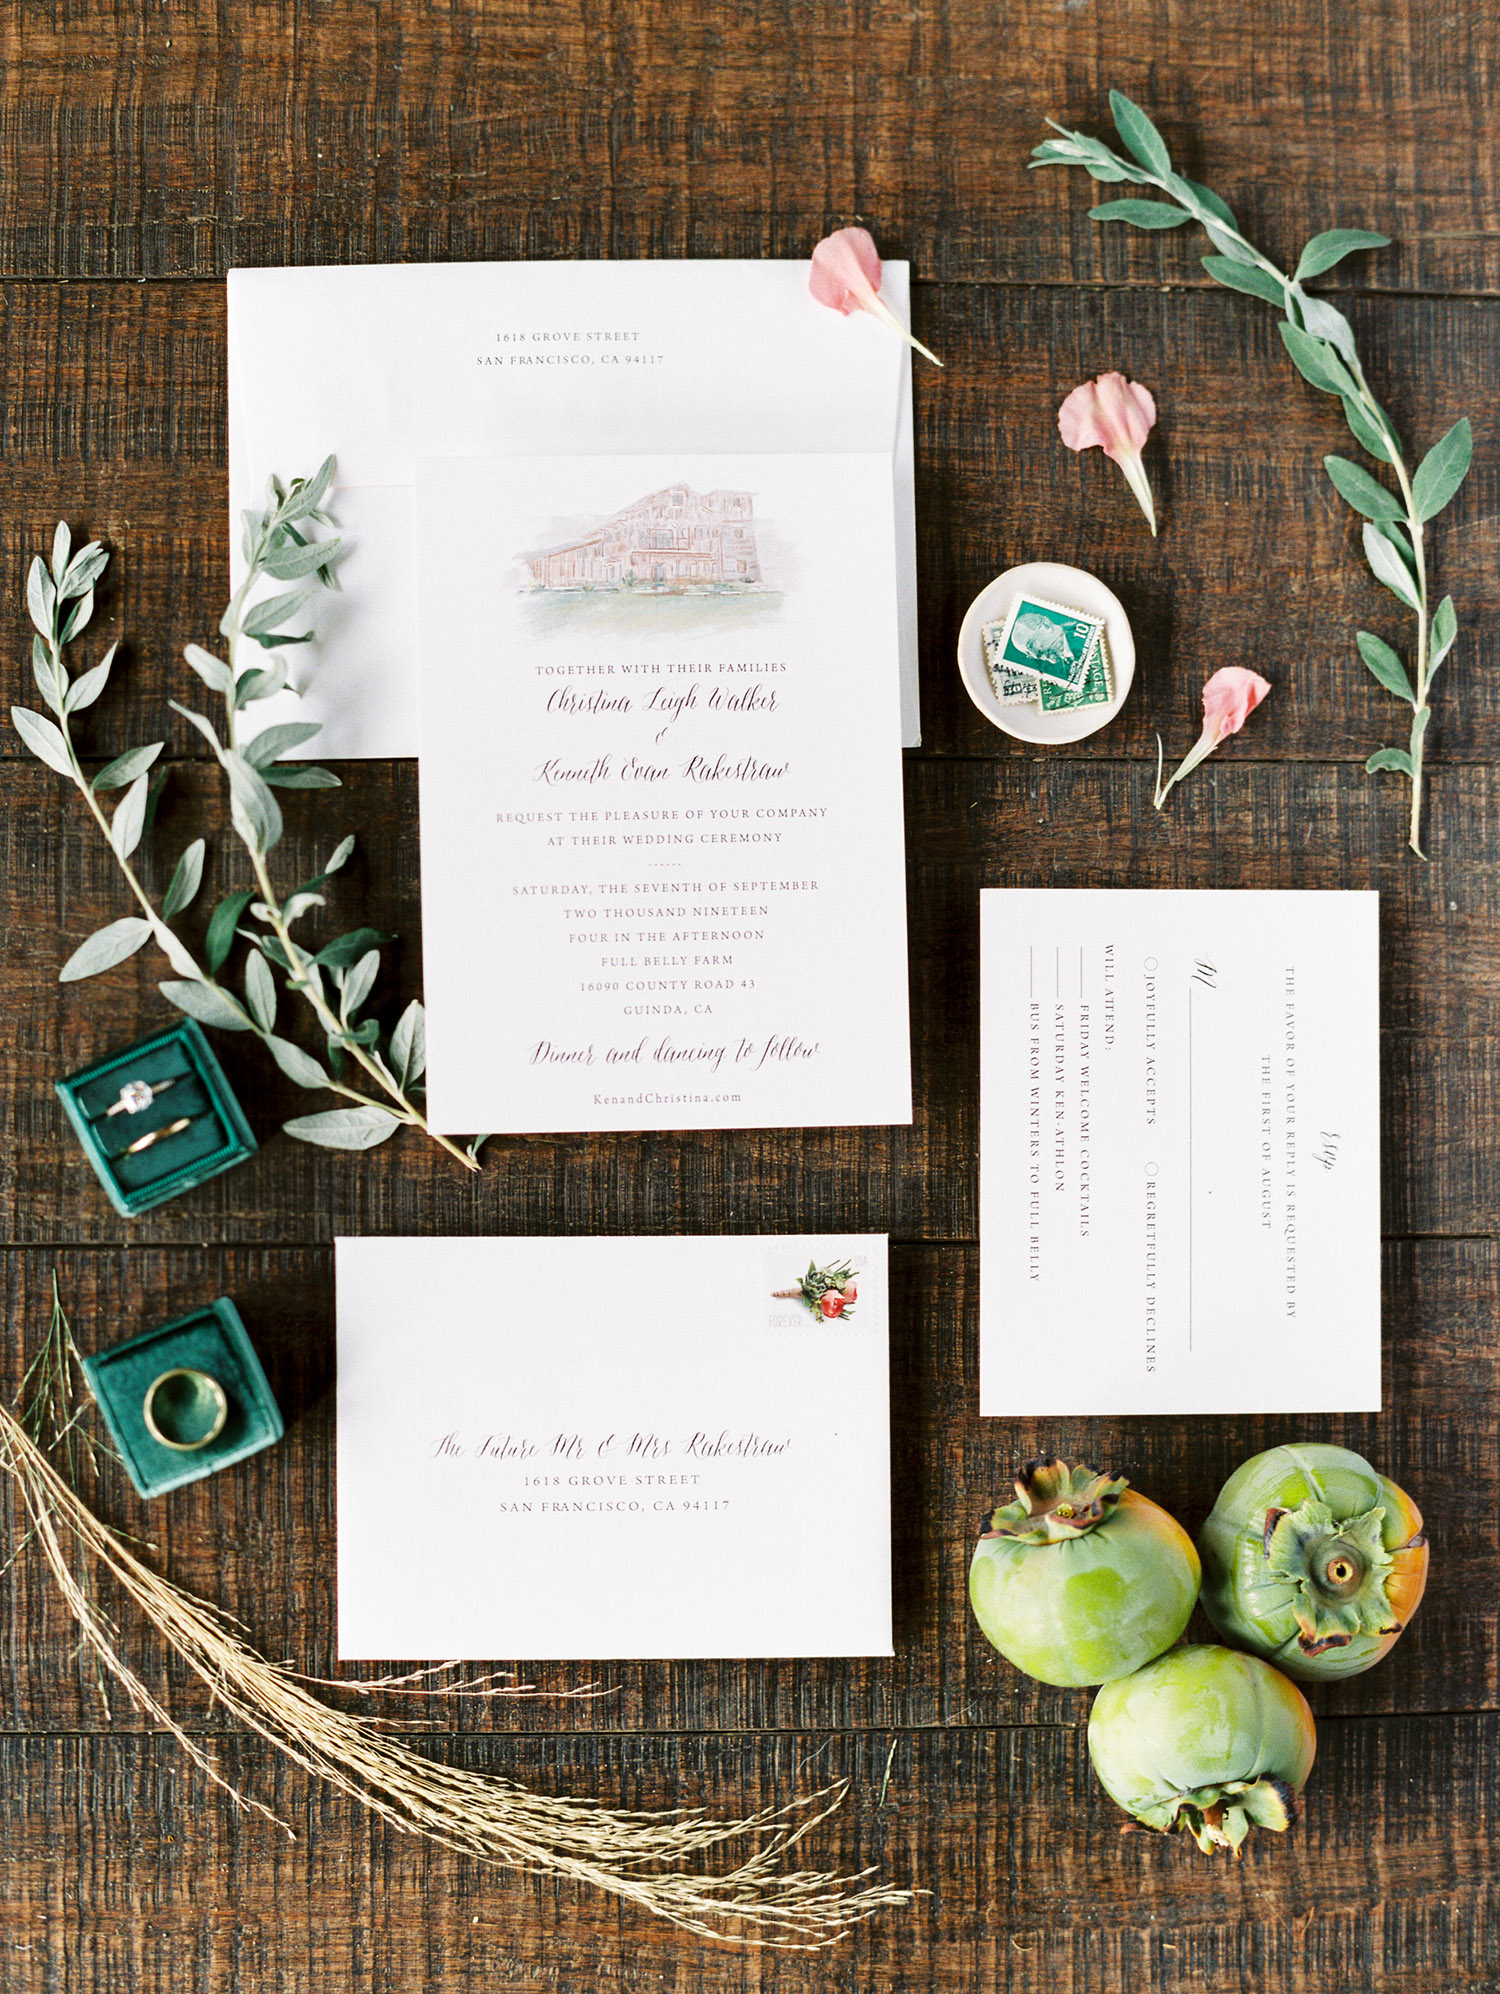 christina ken wedding invites and stationery